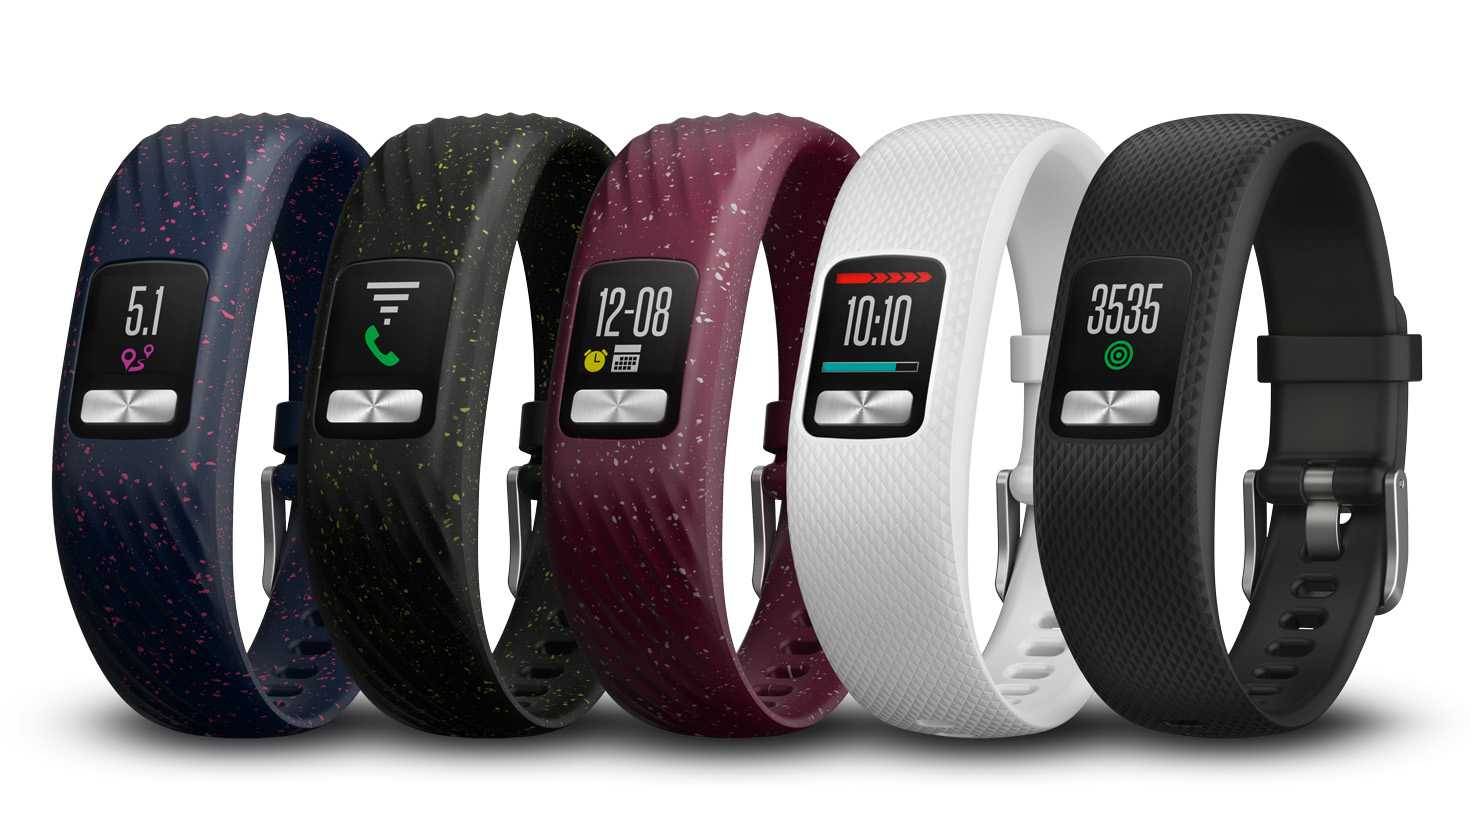 Garmin-Fitnesstracker: Neue Vivofit-Generation mit Farbdisplay